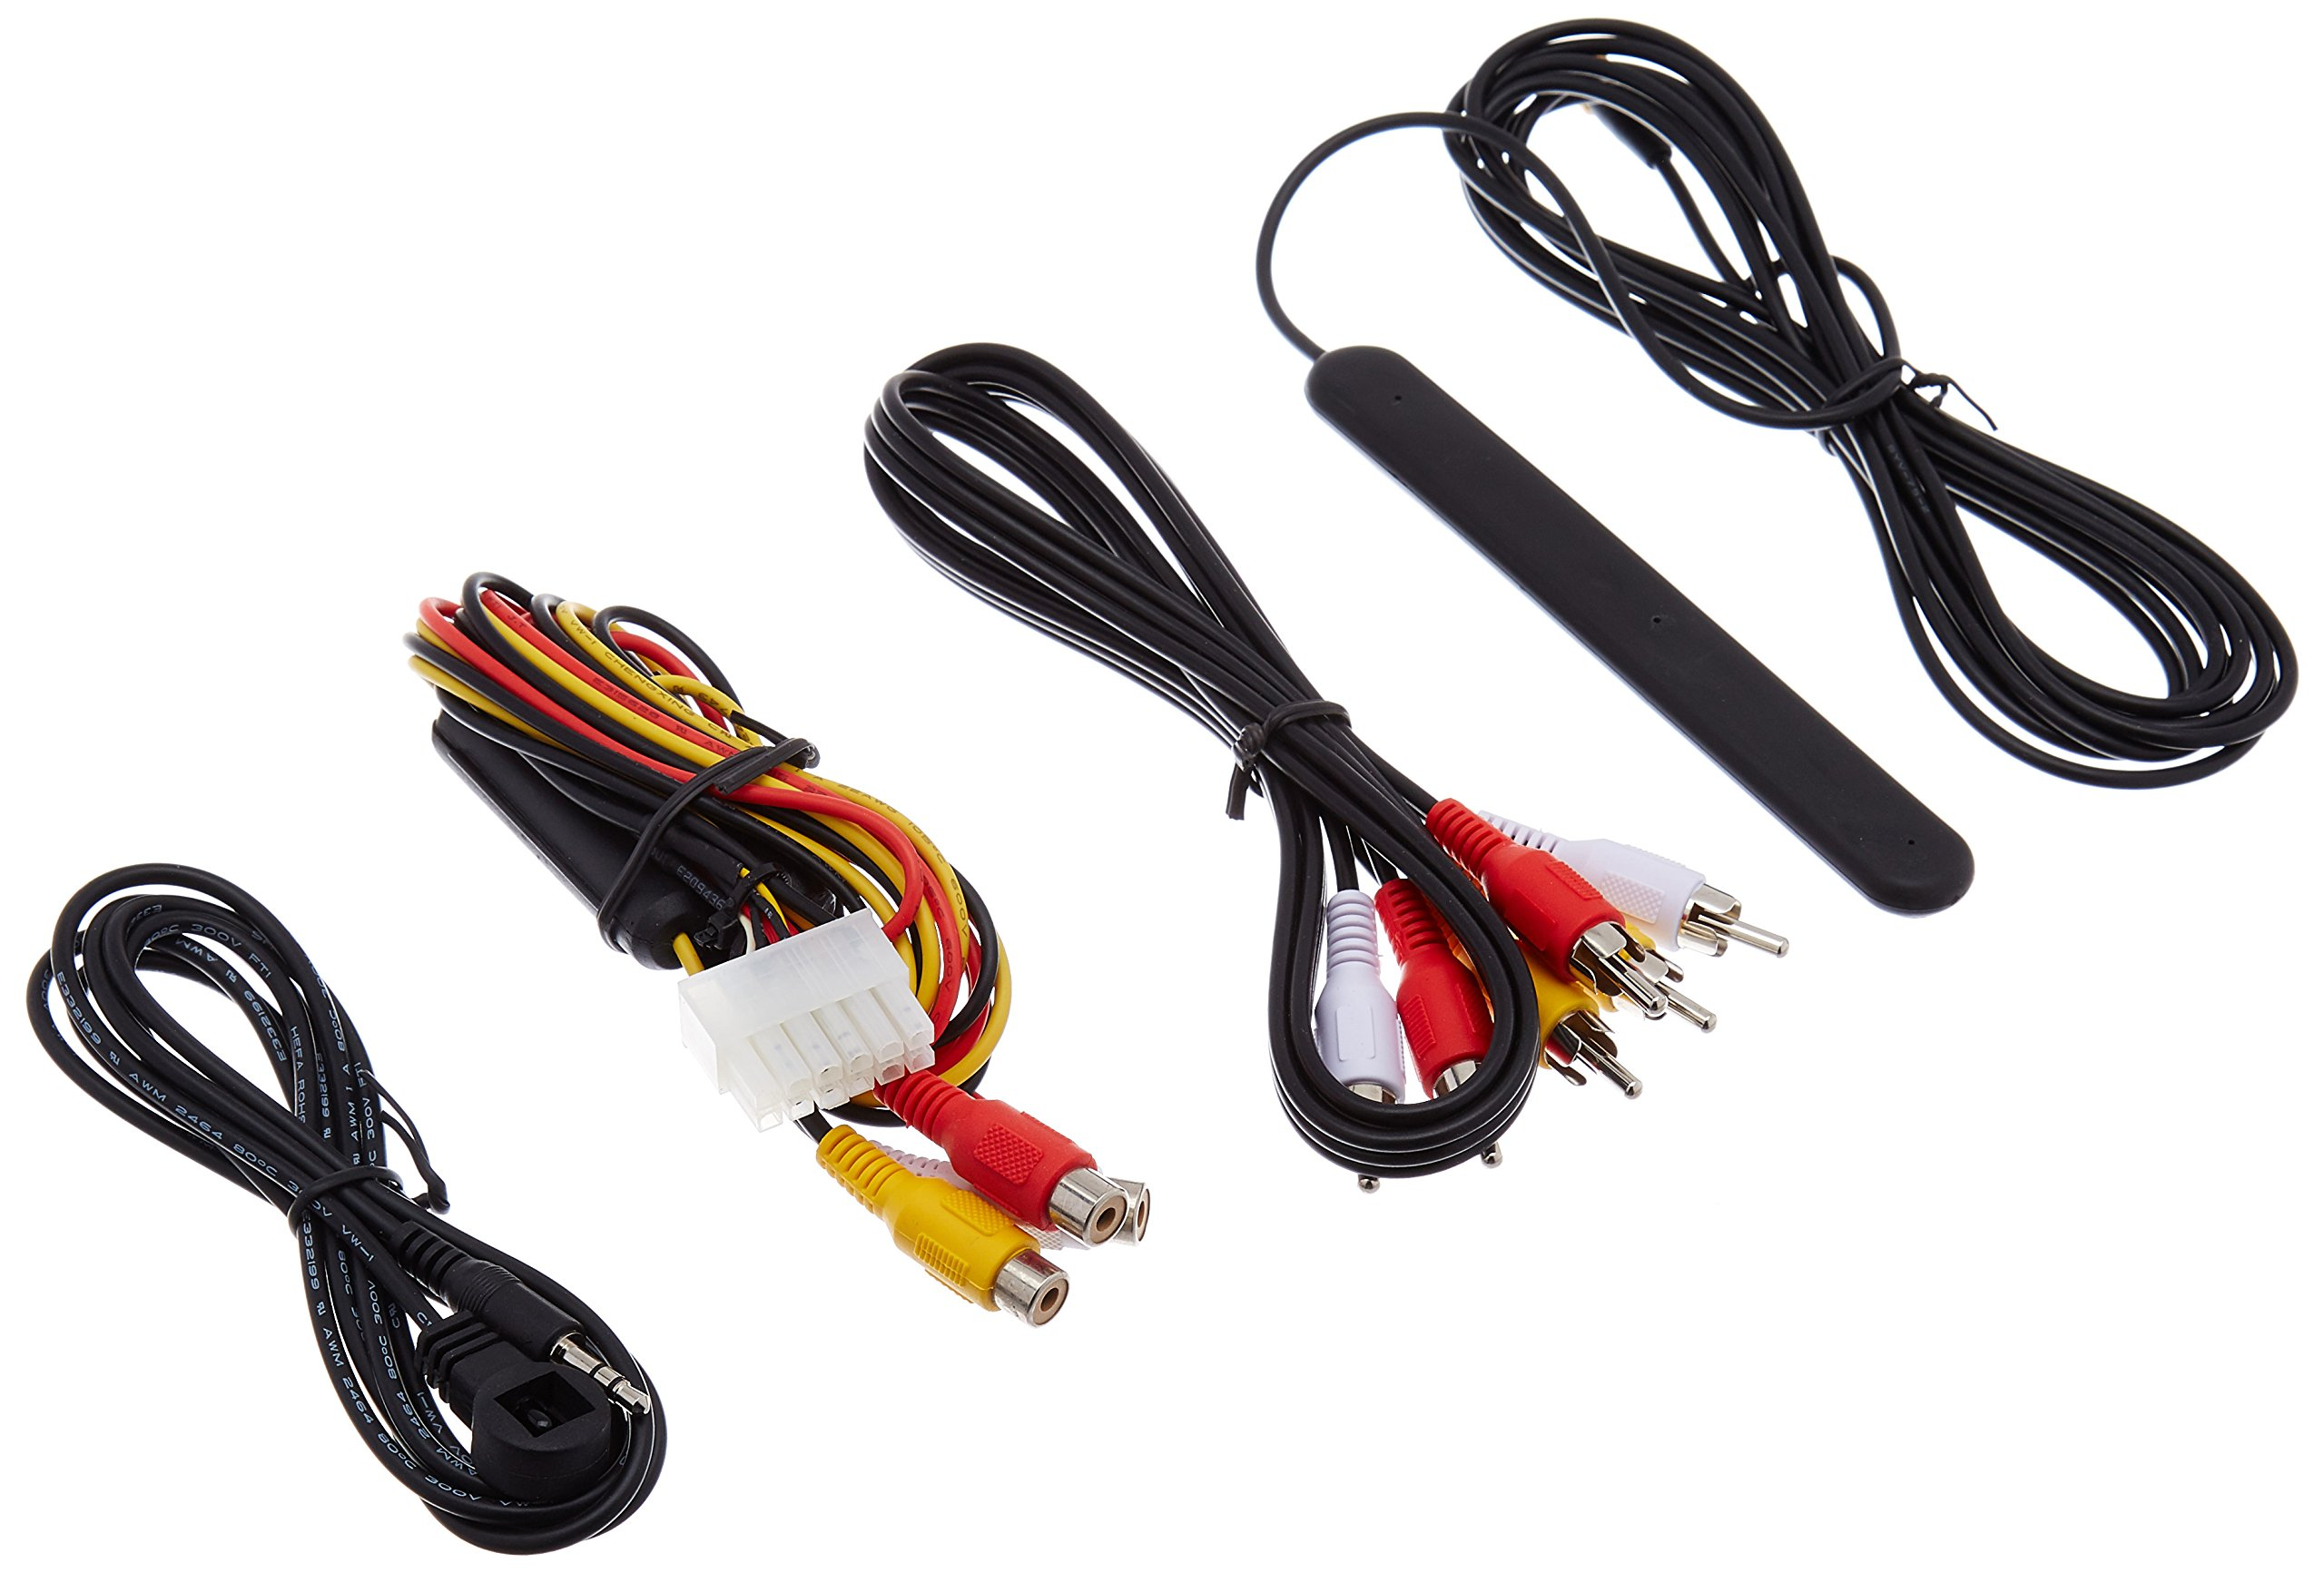 Akhan Digital 9-32 V 35W CANBUS Xenon Retrofit Kit with H7 10000 K HID Xenon Burner Lamp ballast and Mounting Material no error messages no flickering